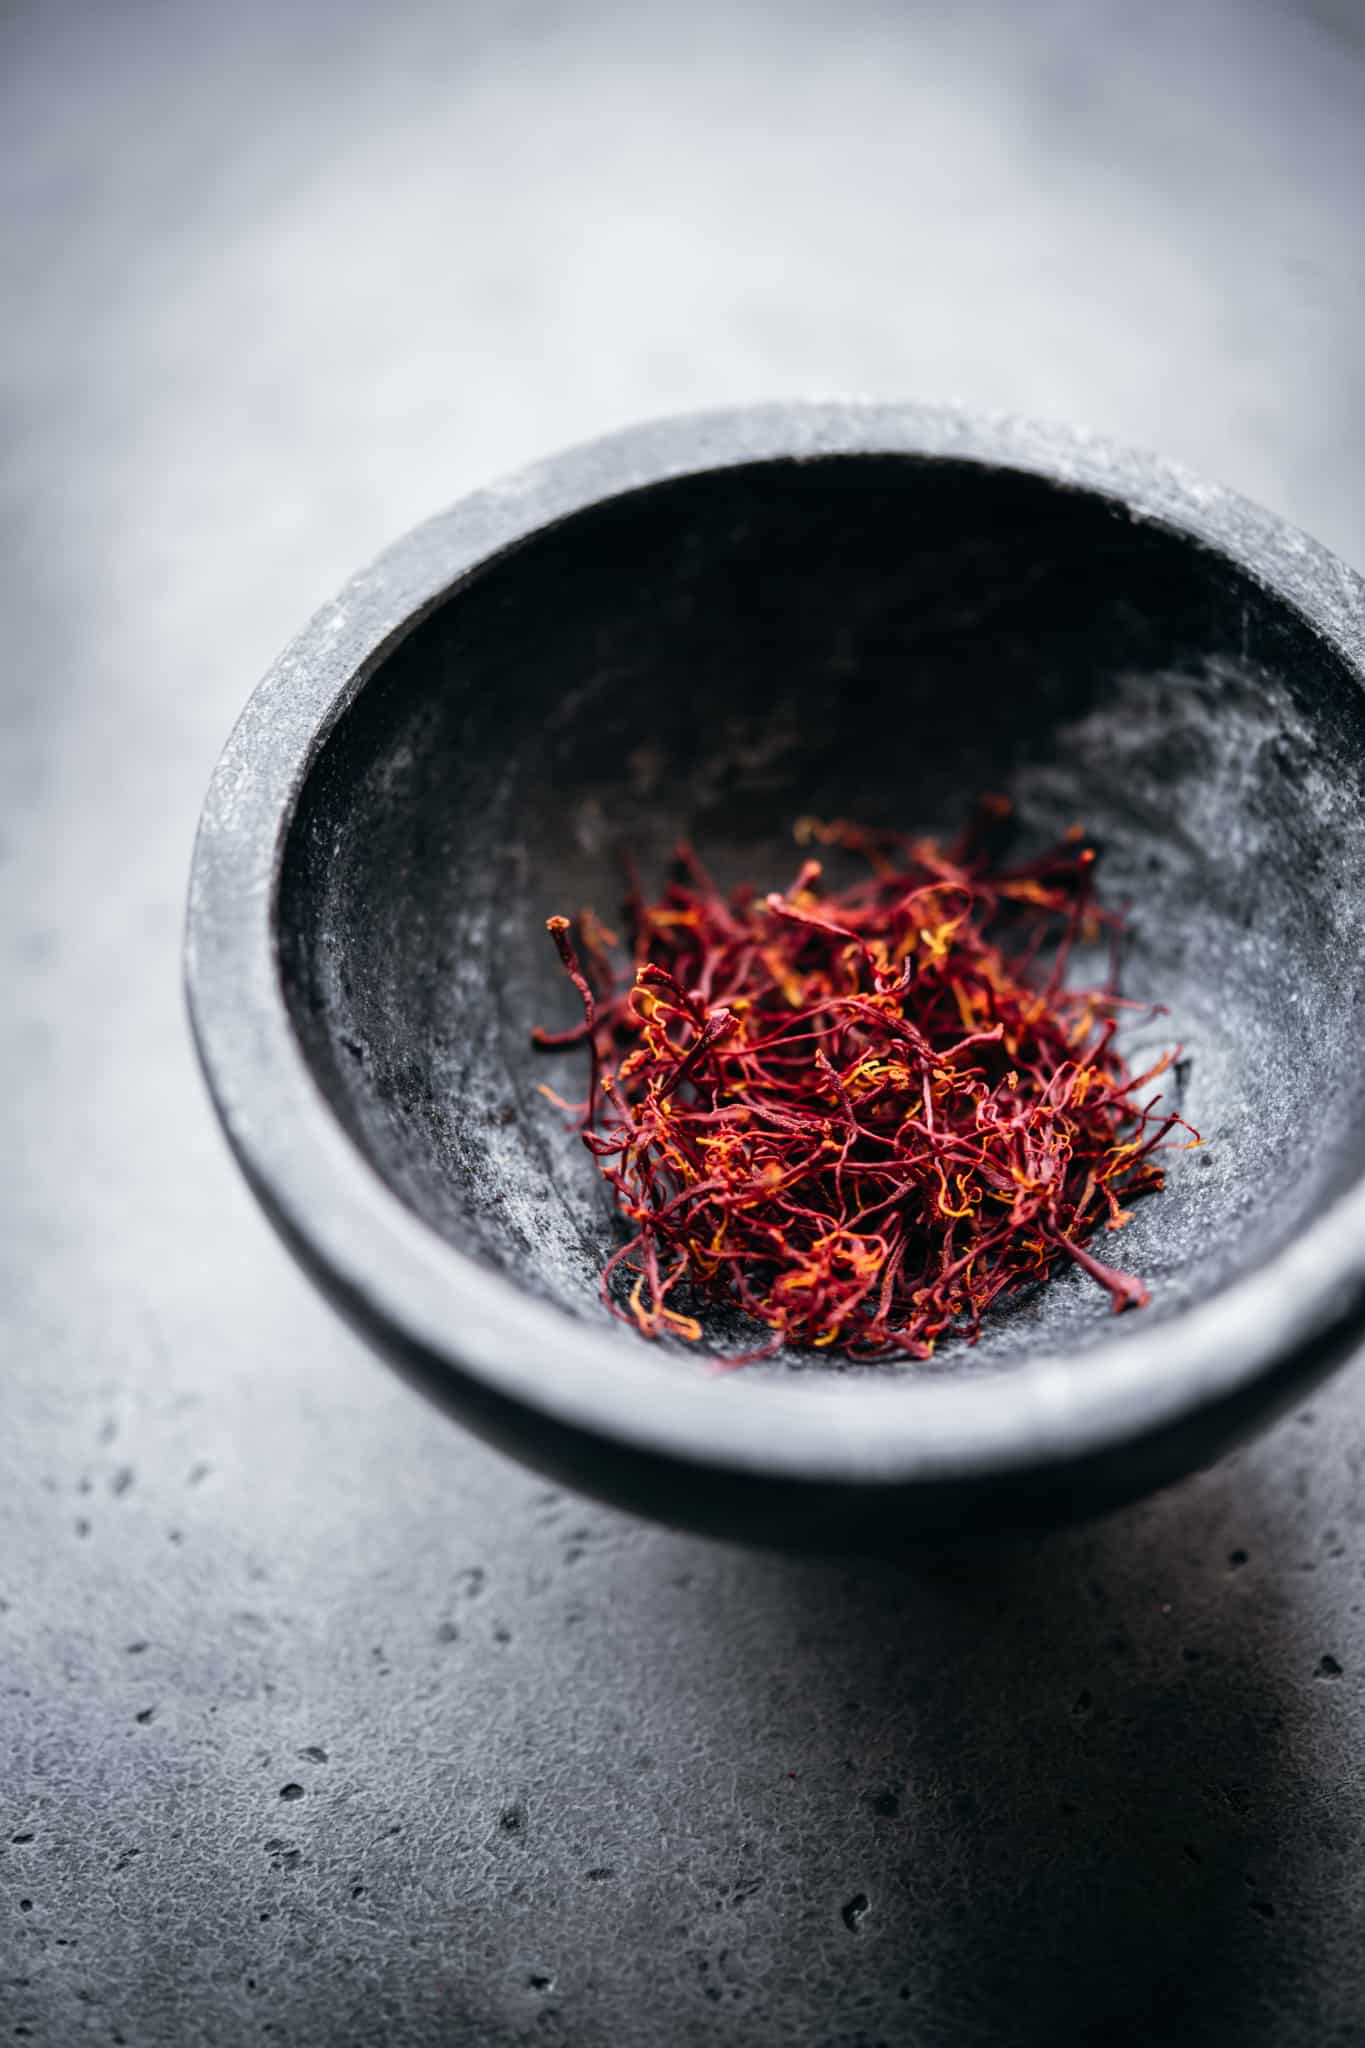 Close up view of saffron threads in a small black bowl